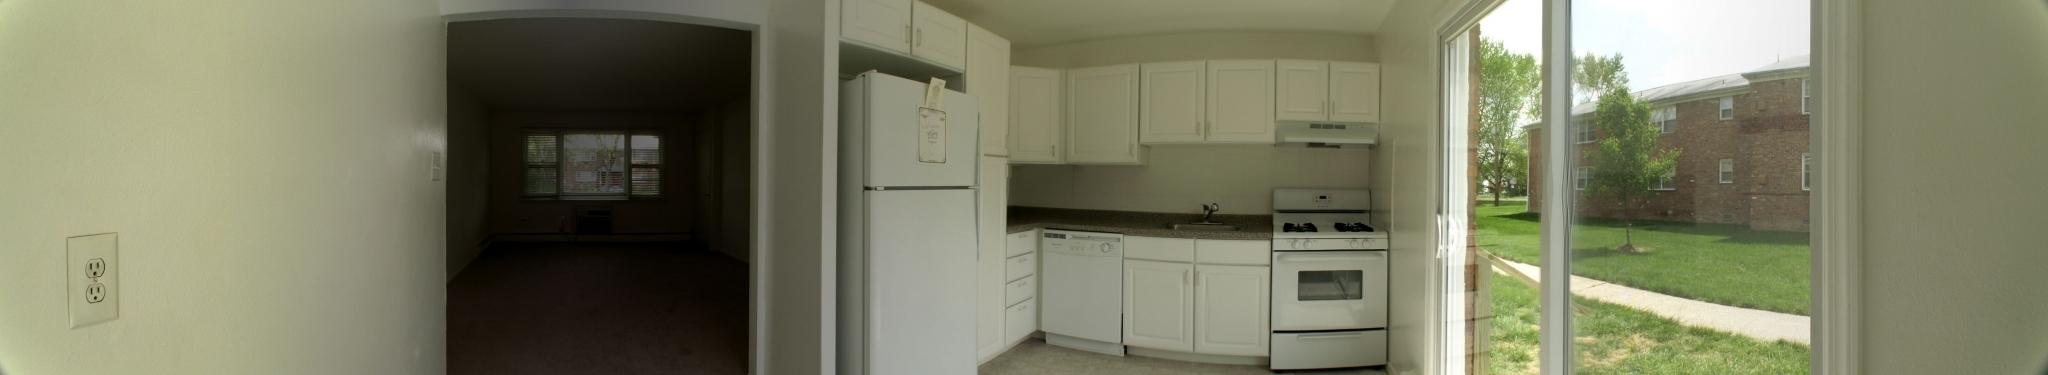 2 bedroom white cabinet